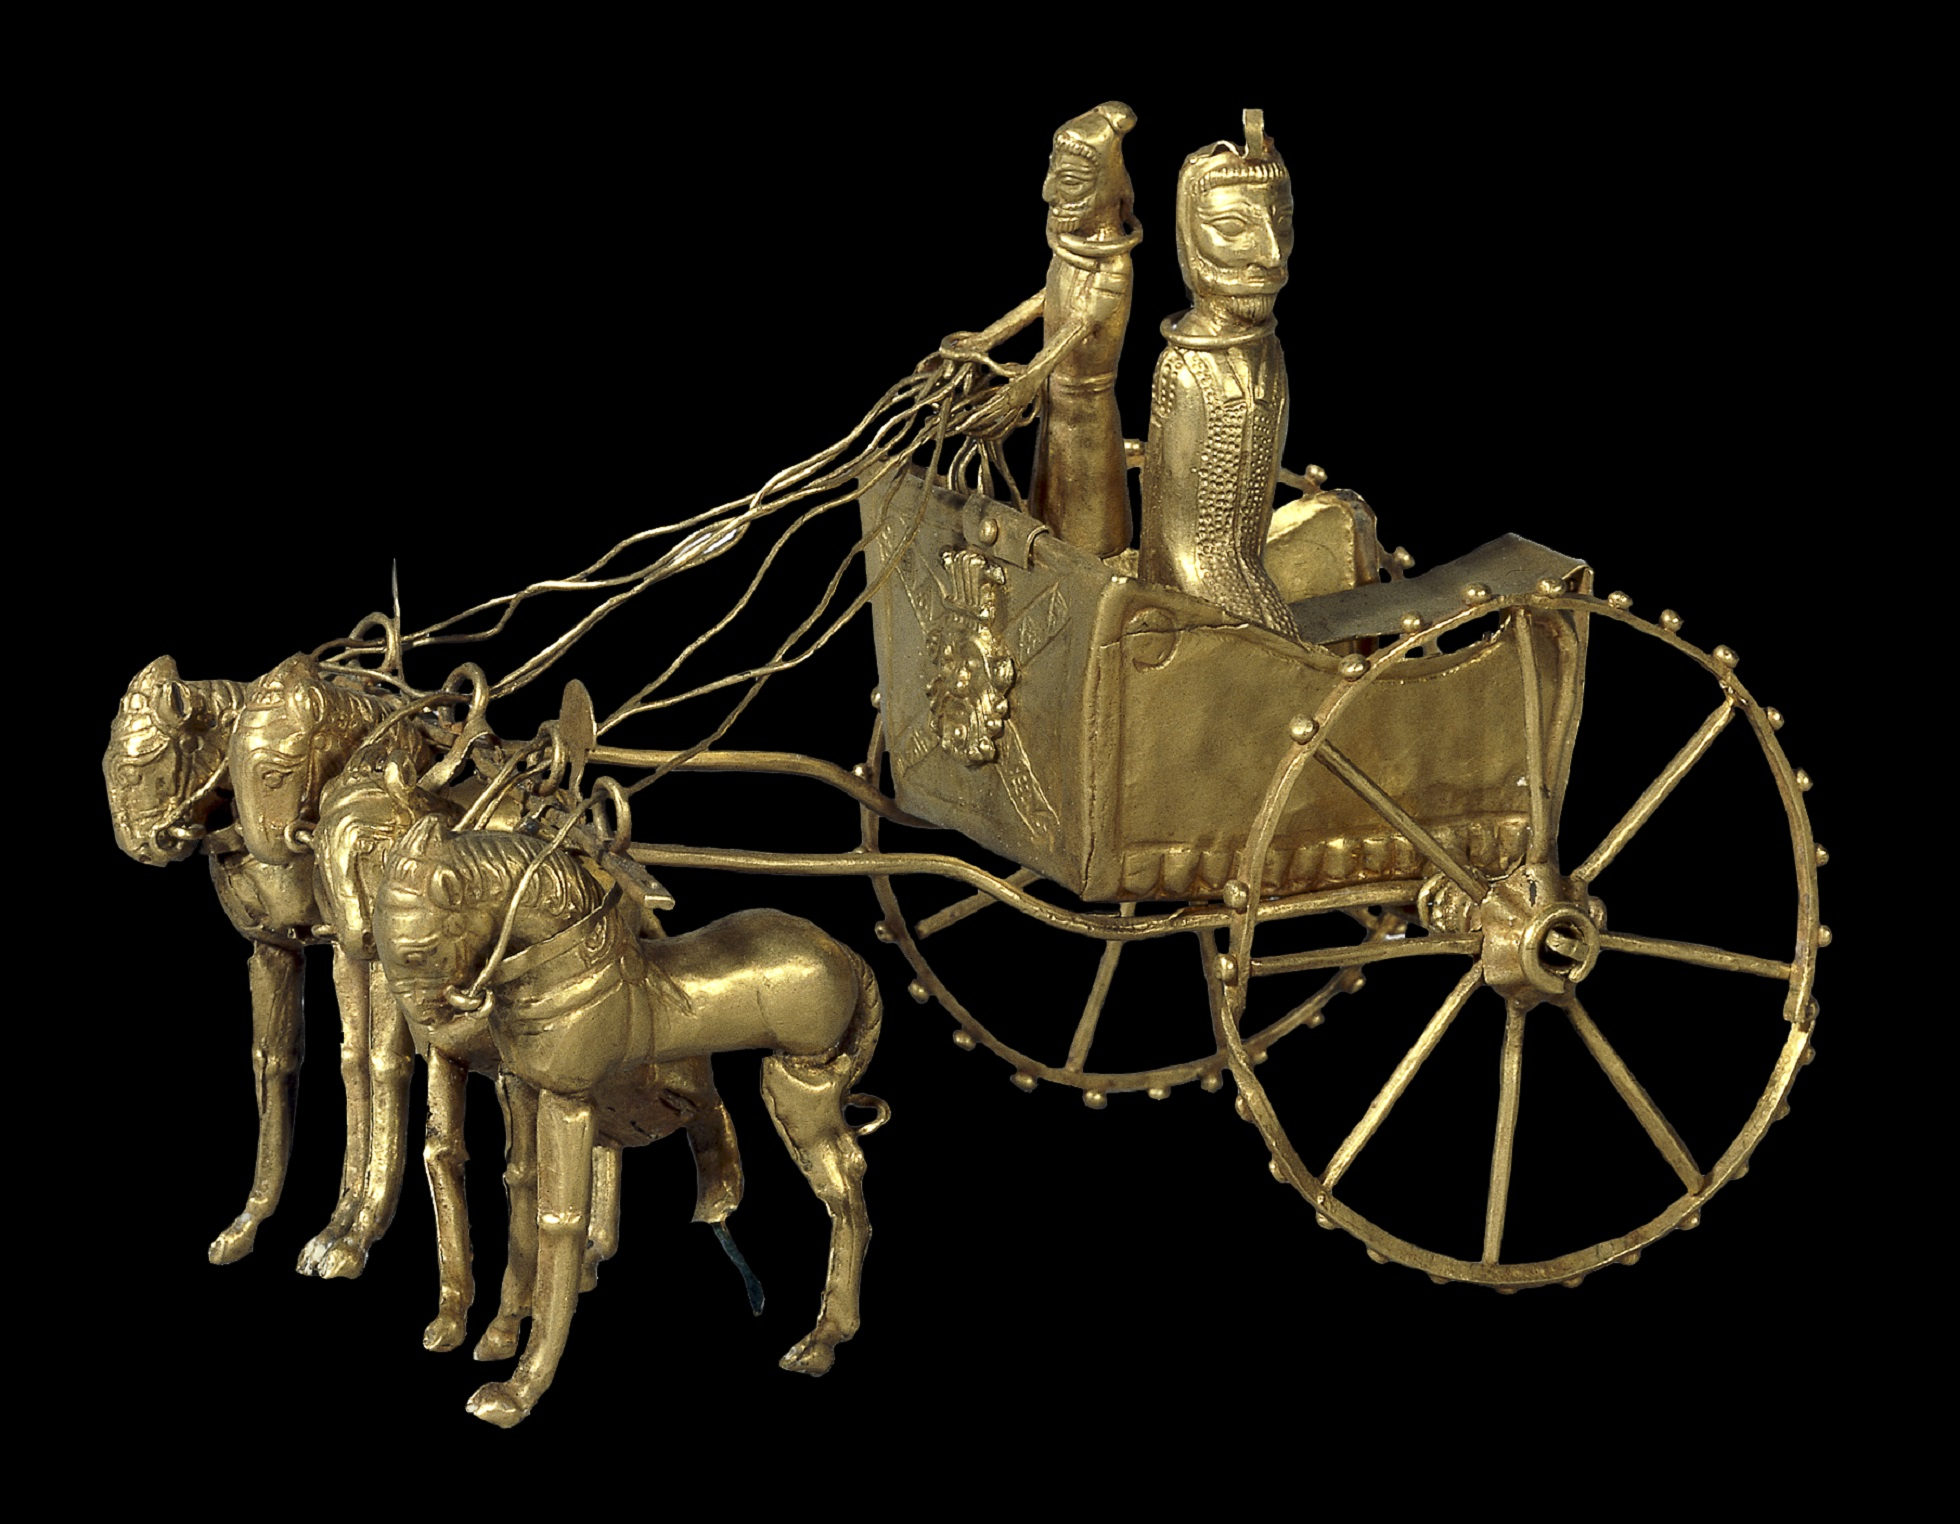 Intricately detailed model of the chariot, with a rider and passenger